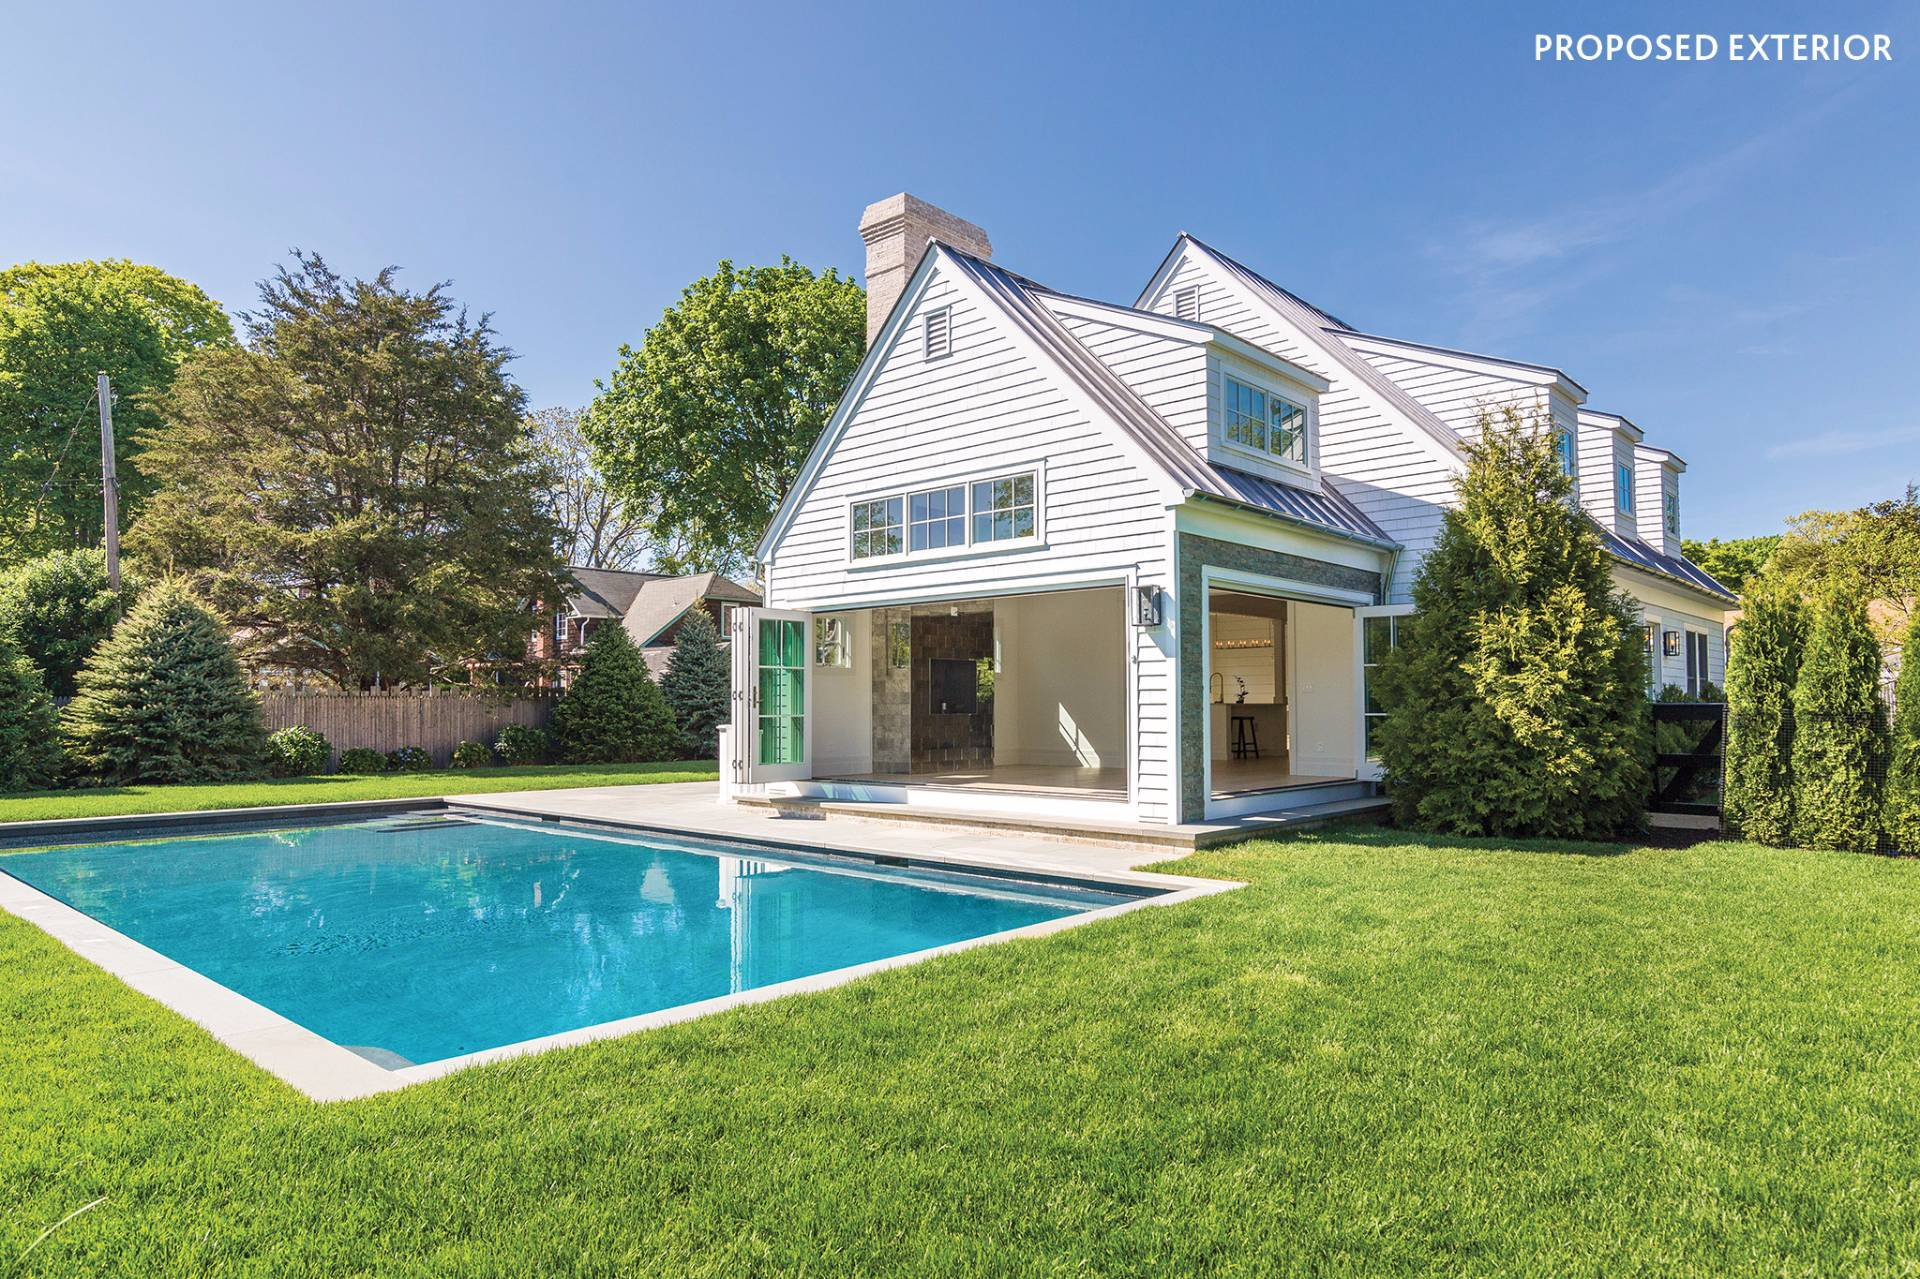 Single Family Home for Sale at Own A New Home! 2 Barclay Court, East Hampton, New York